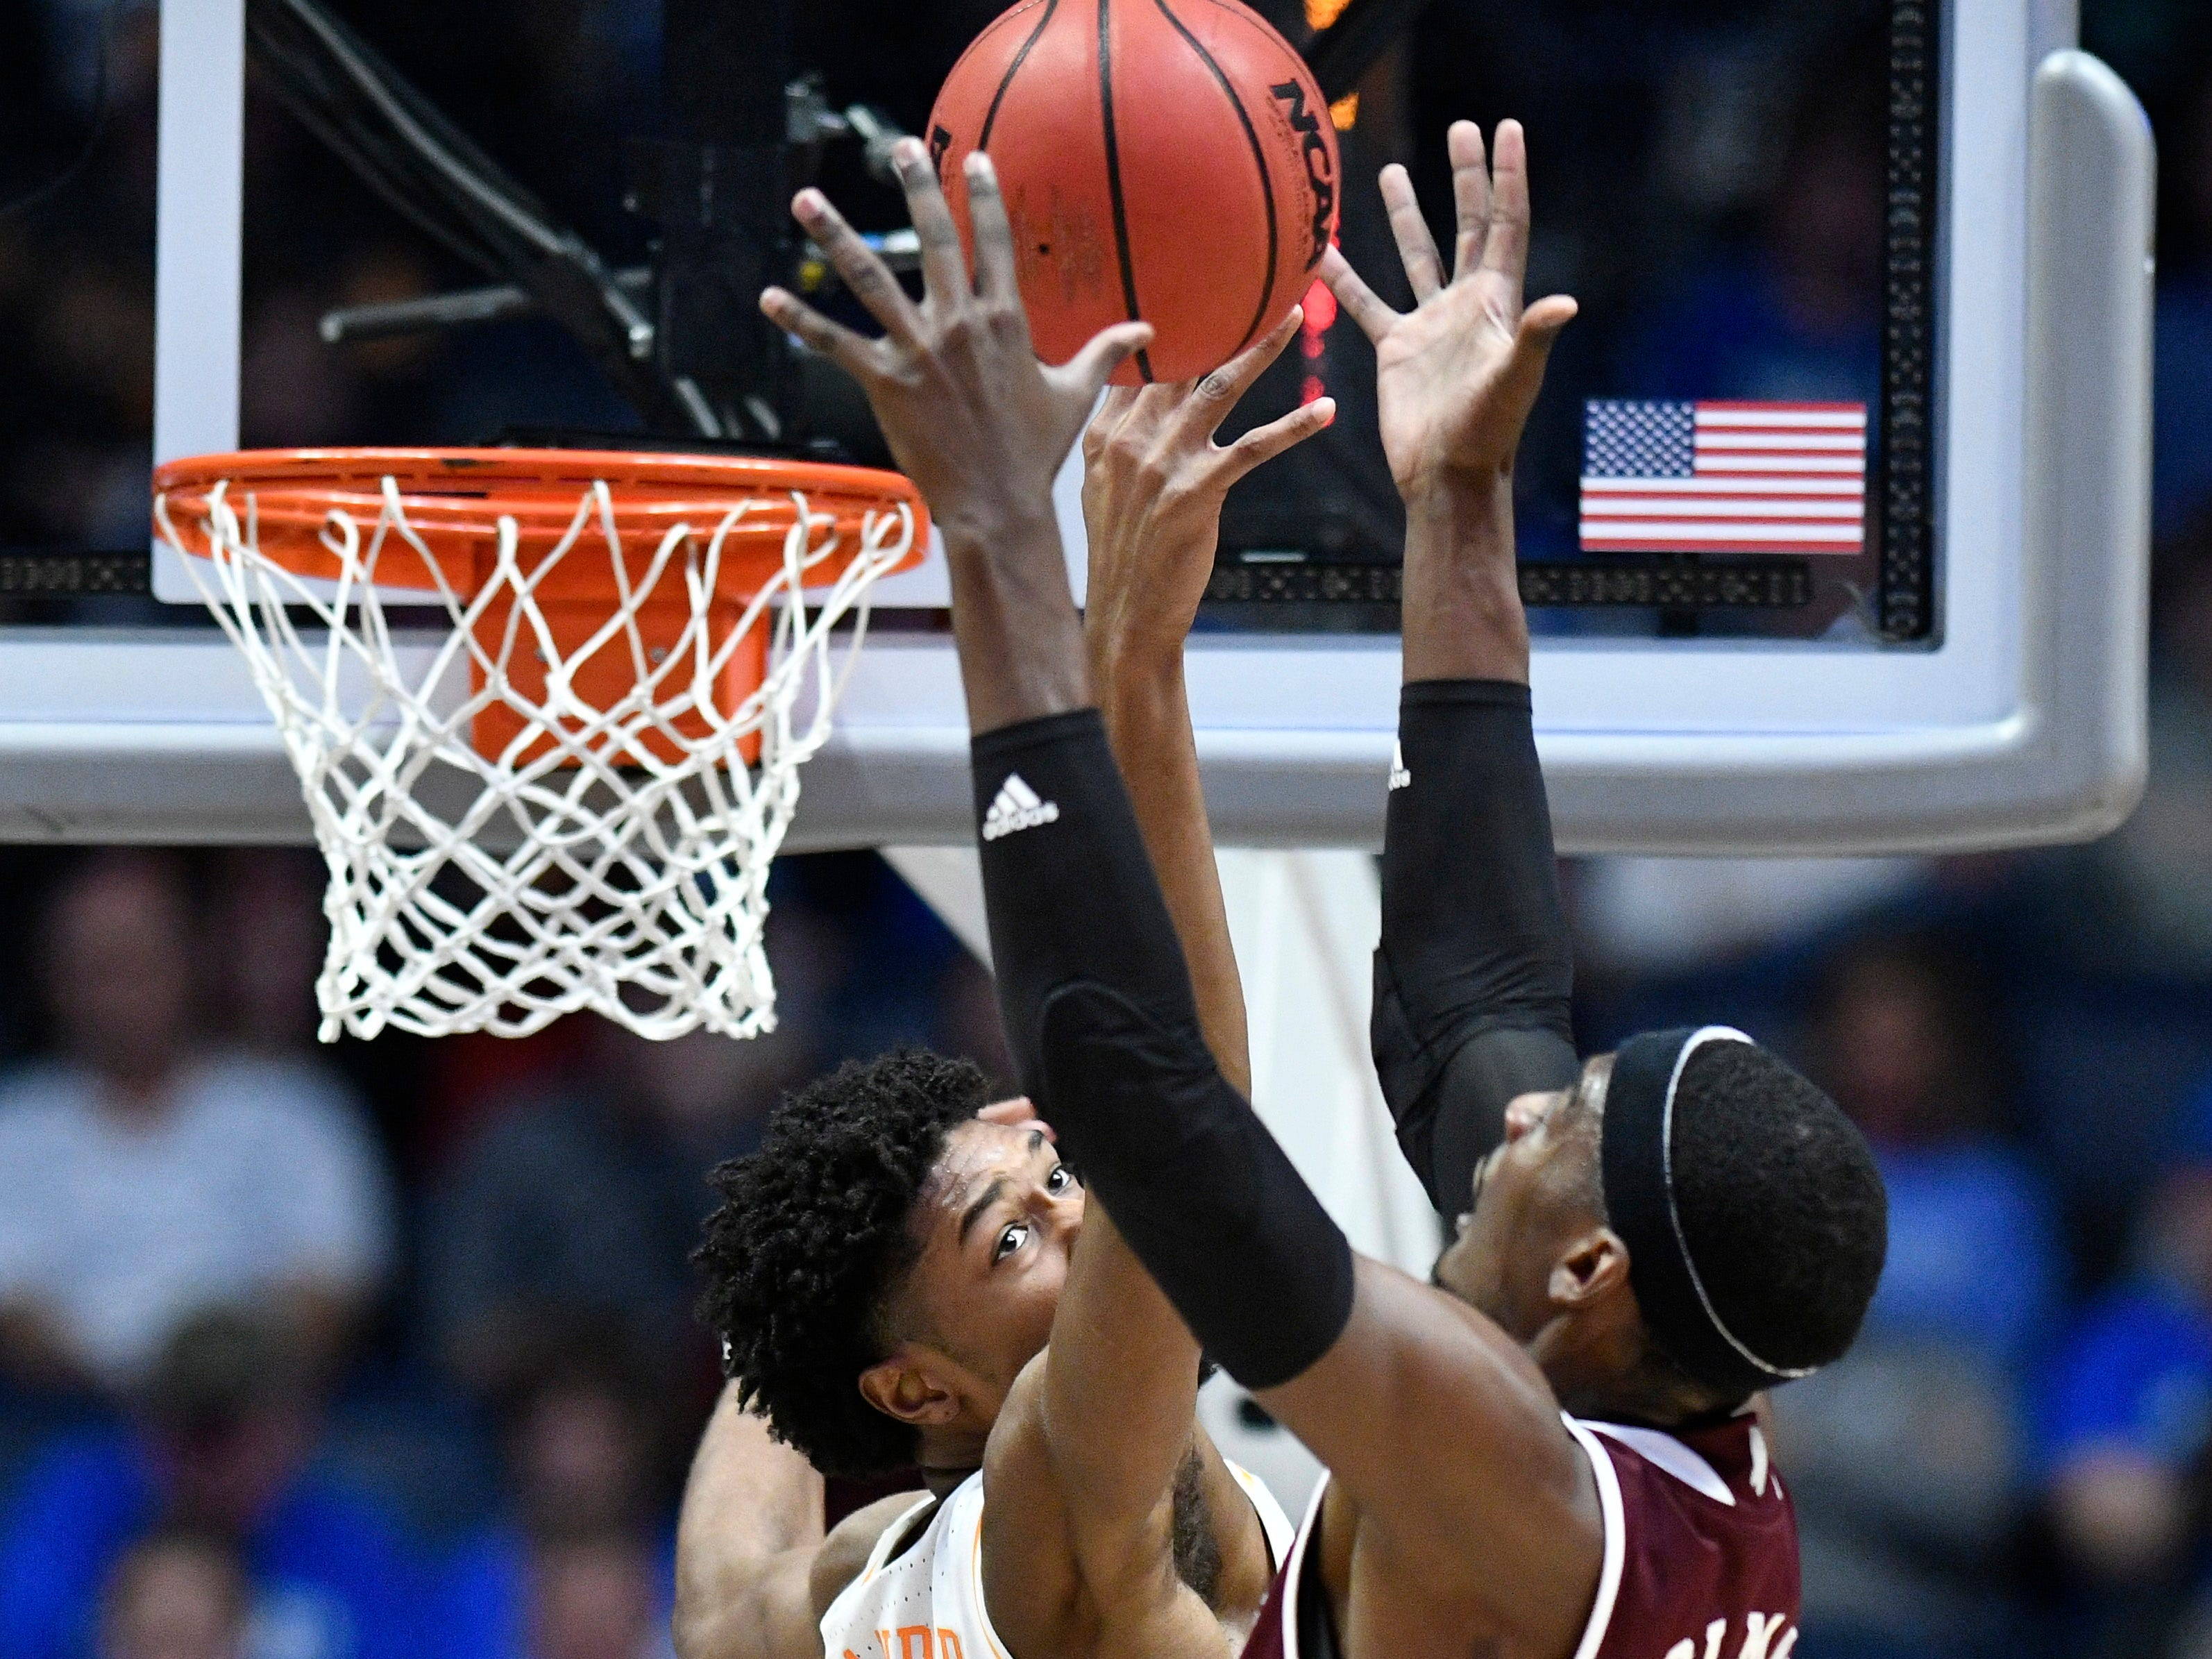 Mississippi State forward Aric Holman (35) battles for a rebound with Tennessee forward Kyle Alexander (11) during the first half of the SEC Men's Basketball Tournament game at Bridgestone Arena in Nashville, Tenn., Friday, March 15, 2019.